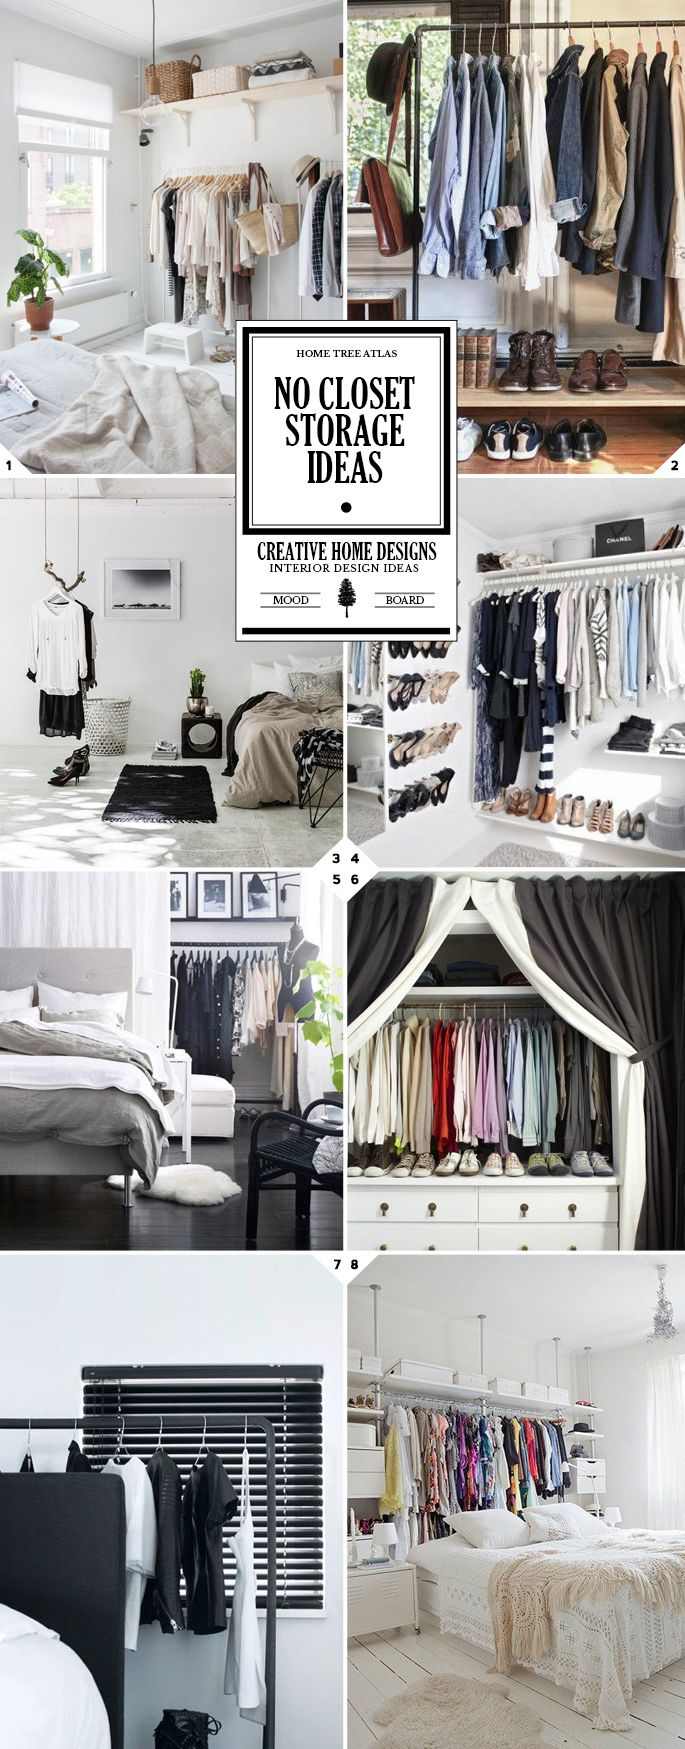 Getting creative no closet solutions and storage ideas - Storage for bedrooms without closets ...